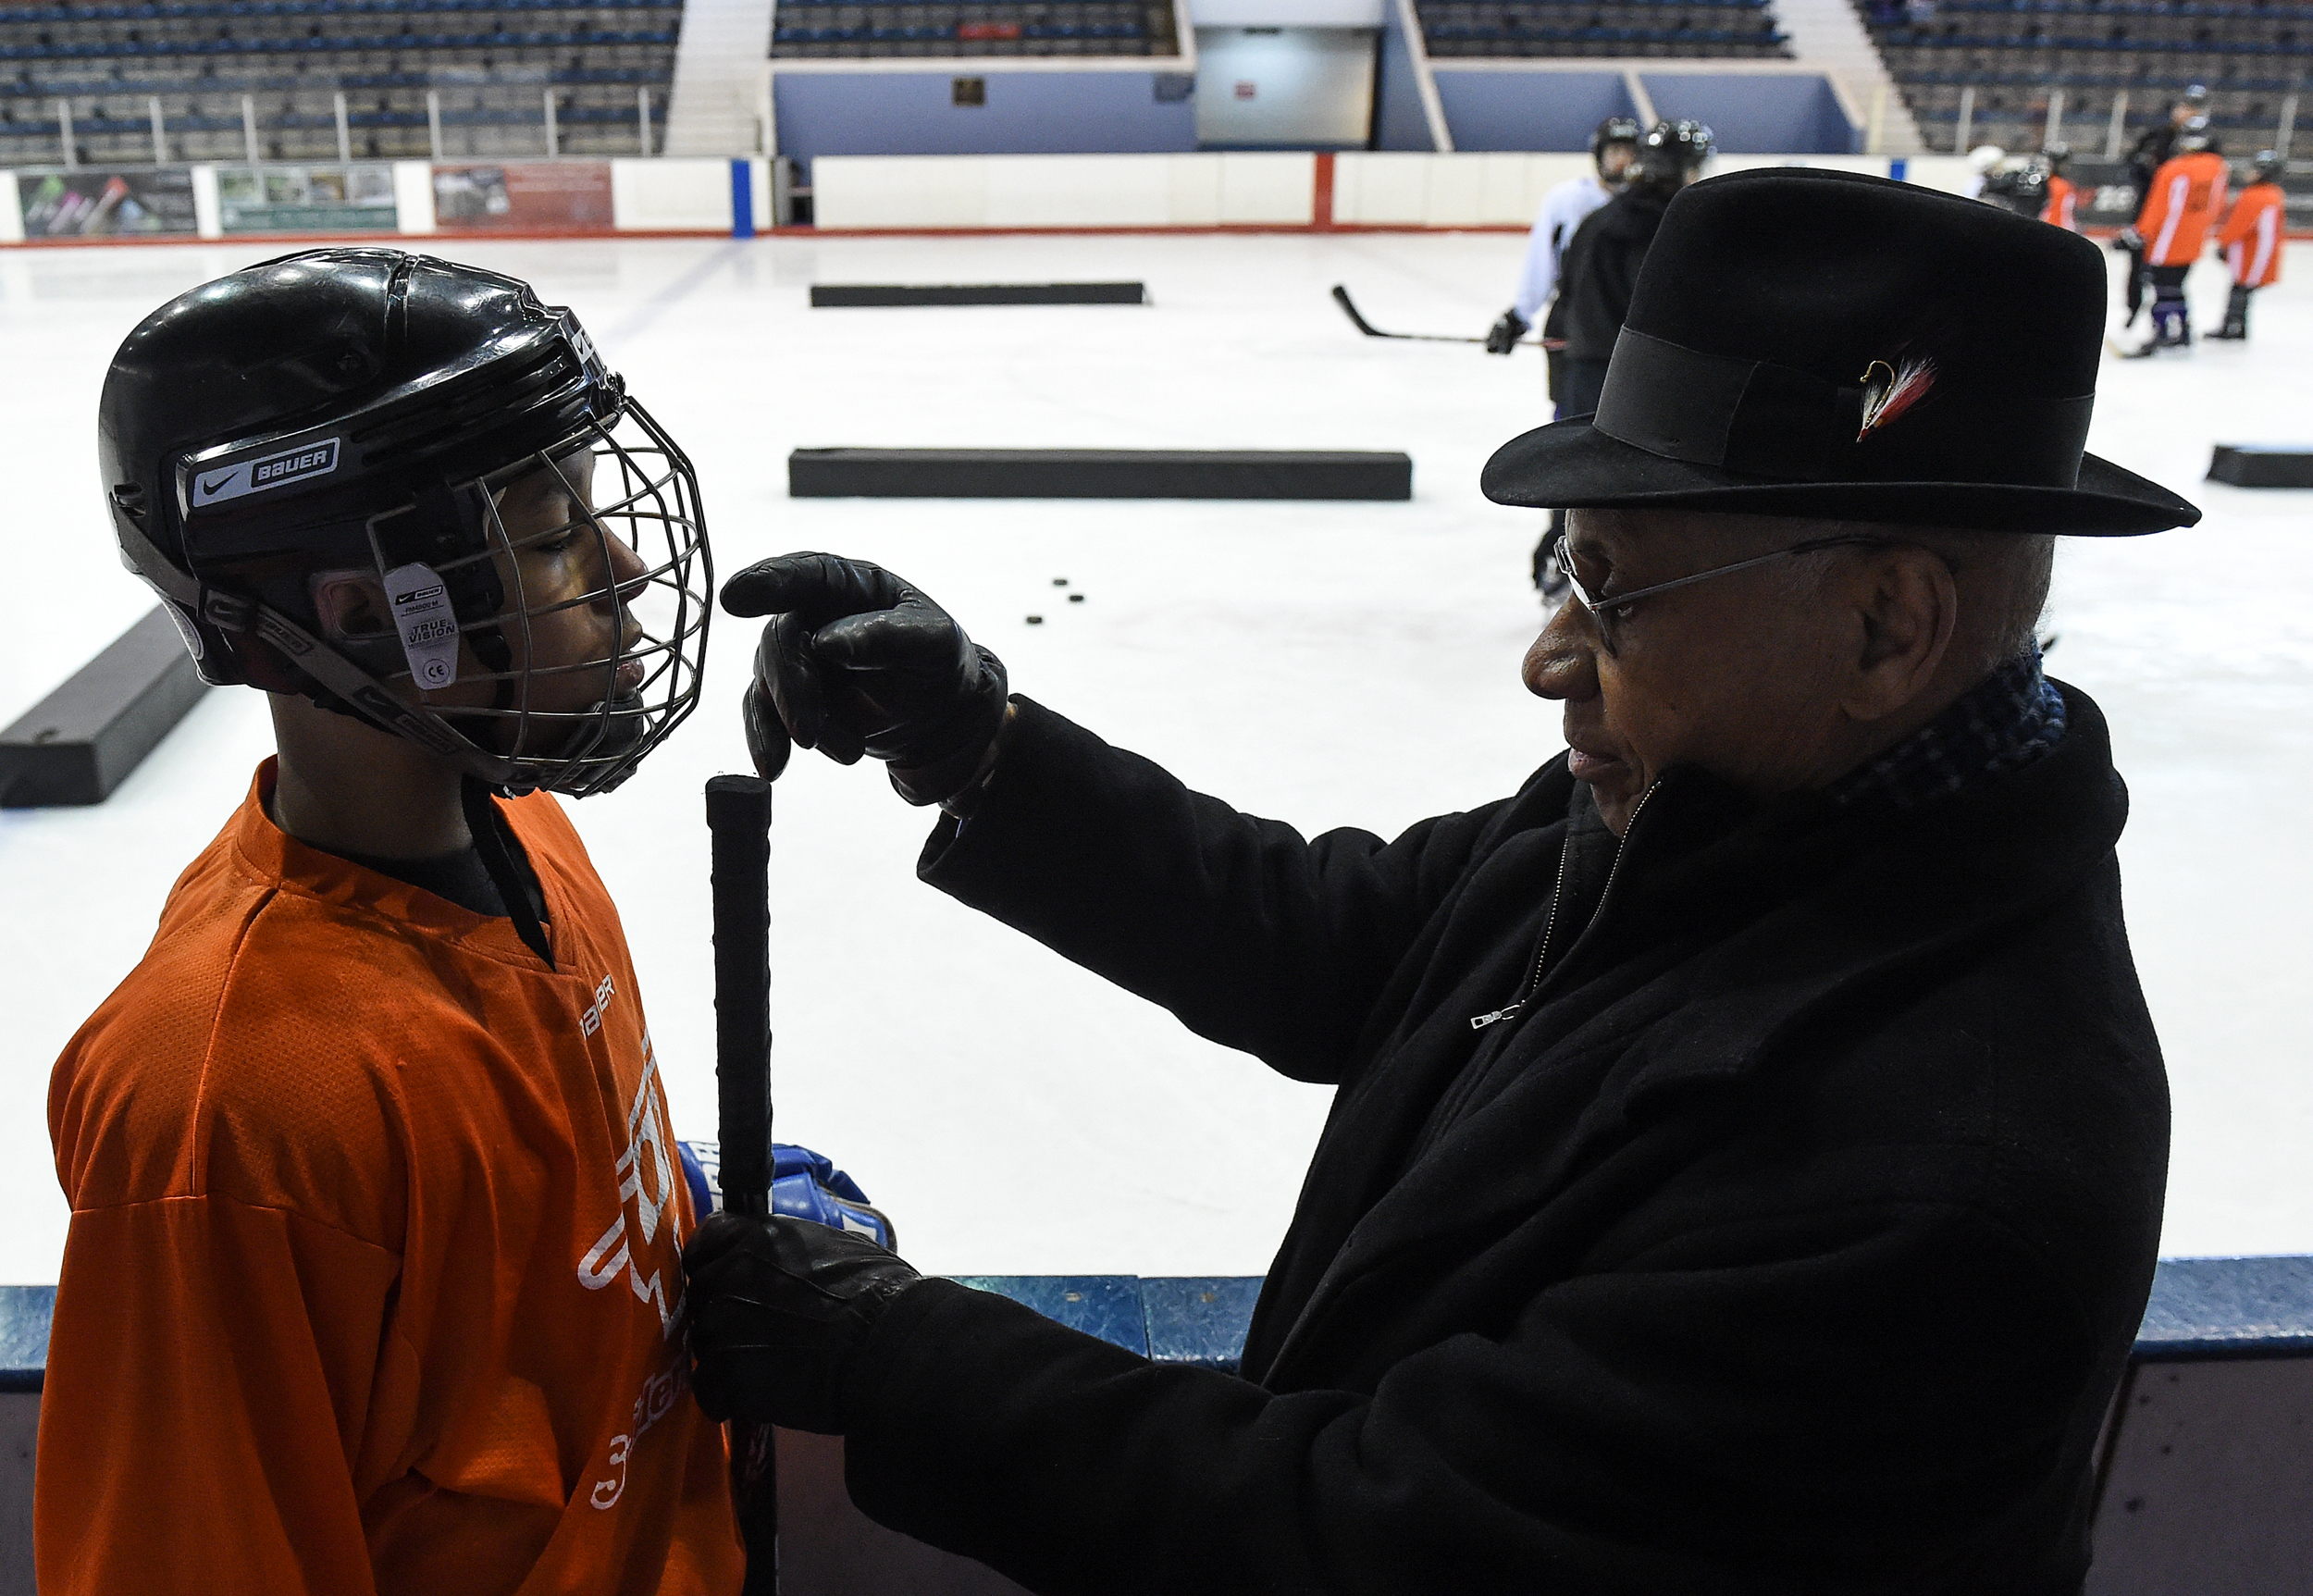 Willie O'Ree checks the height of the stick of Jeremiah Alvarado, 13, of Buffalo, New York, during the 2016 NHL/Willie ORee Skills Weekend hosted by the Ed Snider Youth Hockey Foundation in Philadelphia, Pa. on Saturday, March 5, 2016. O'Ree, the first black player in the National Hockey League, made his NHL debut with the Bruins on January 18, 1958.